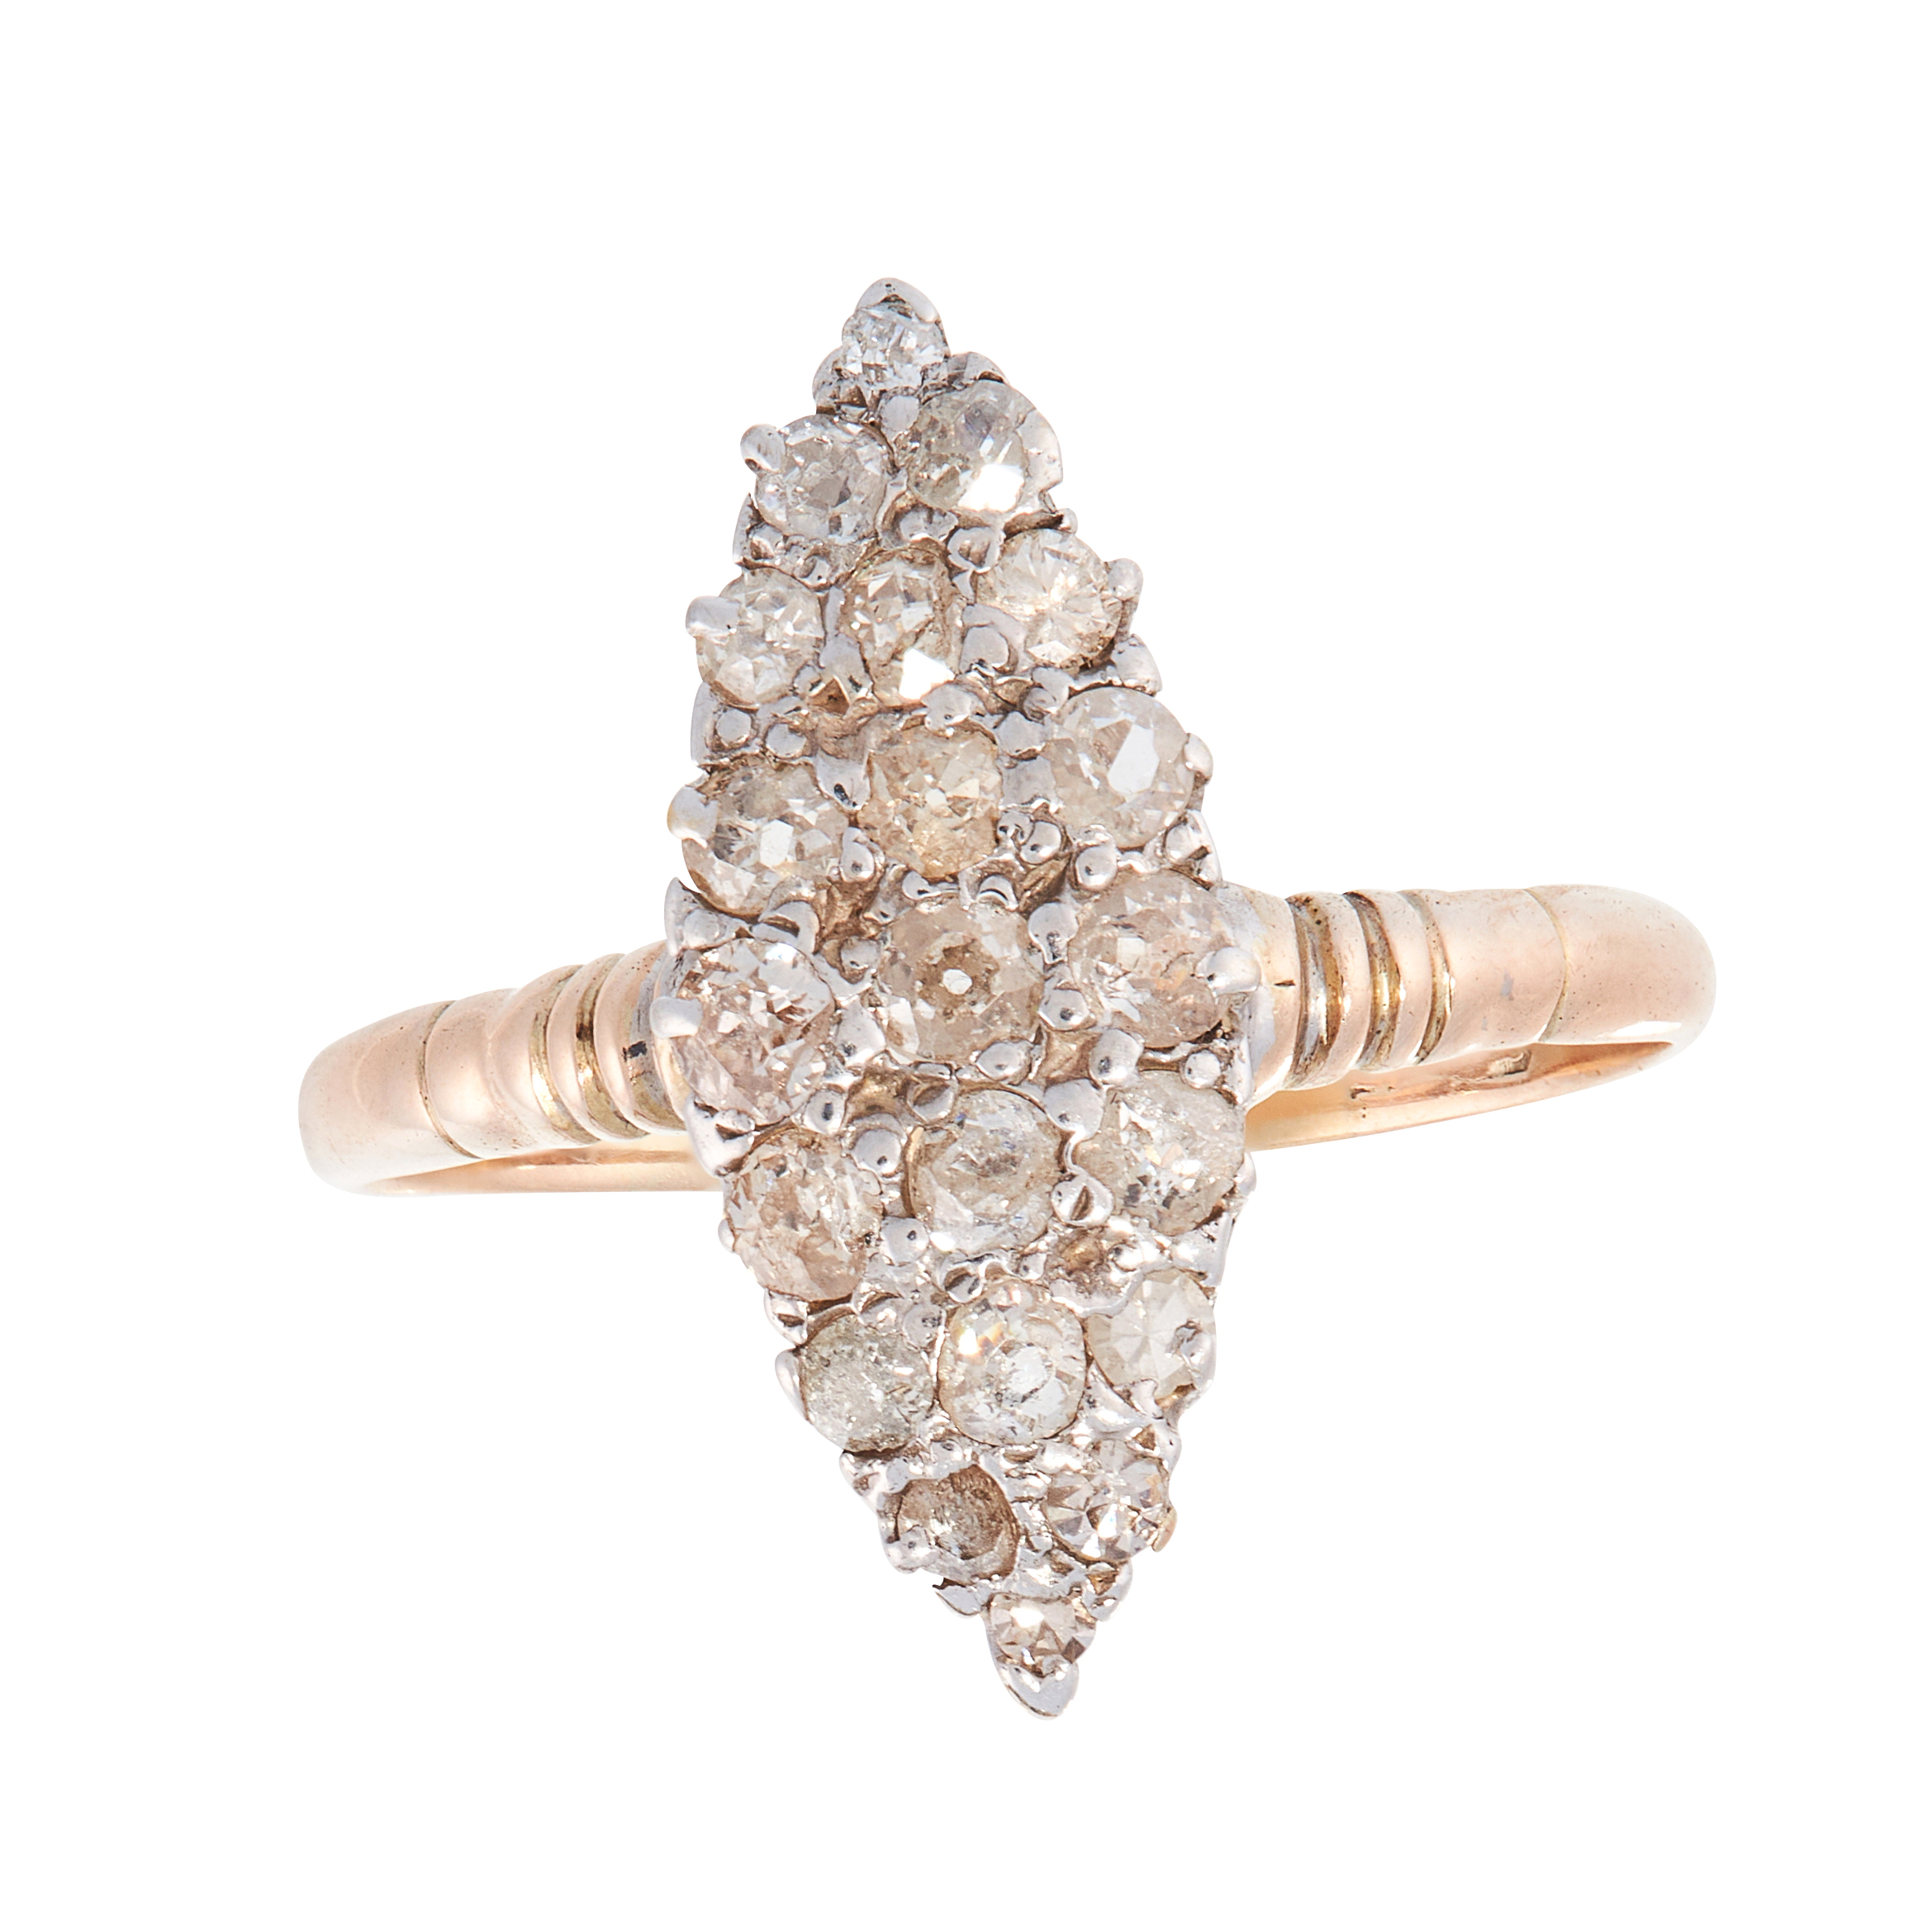 AN ANTIQUE DIAMOND DRESS RING, CIRCA 1900 the marquise shaped face set with old cut diamonds, marked